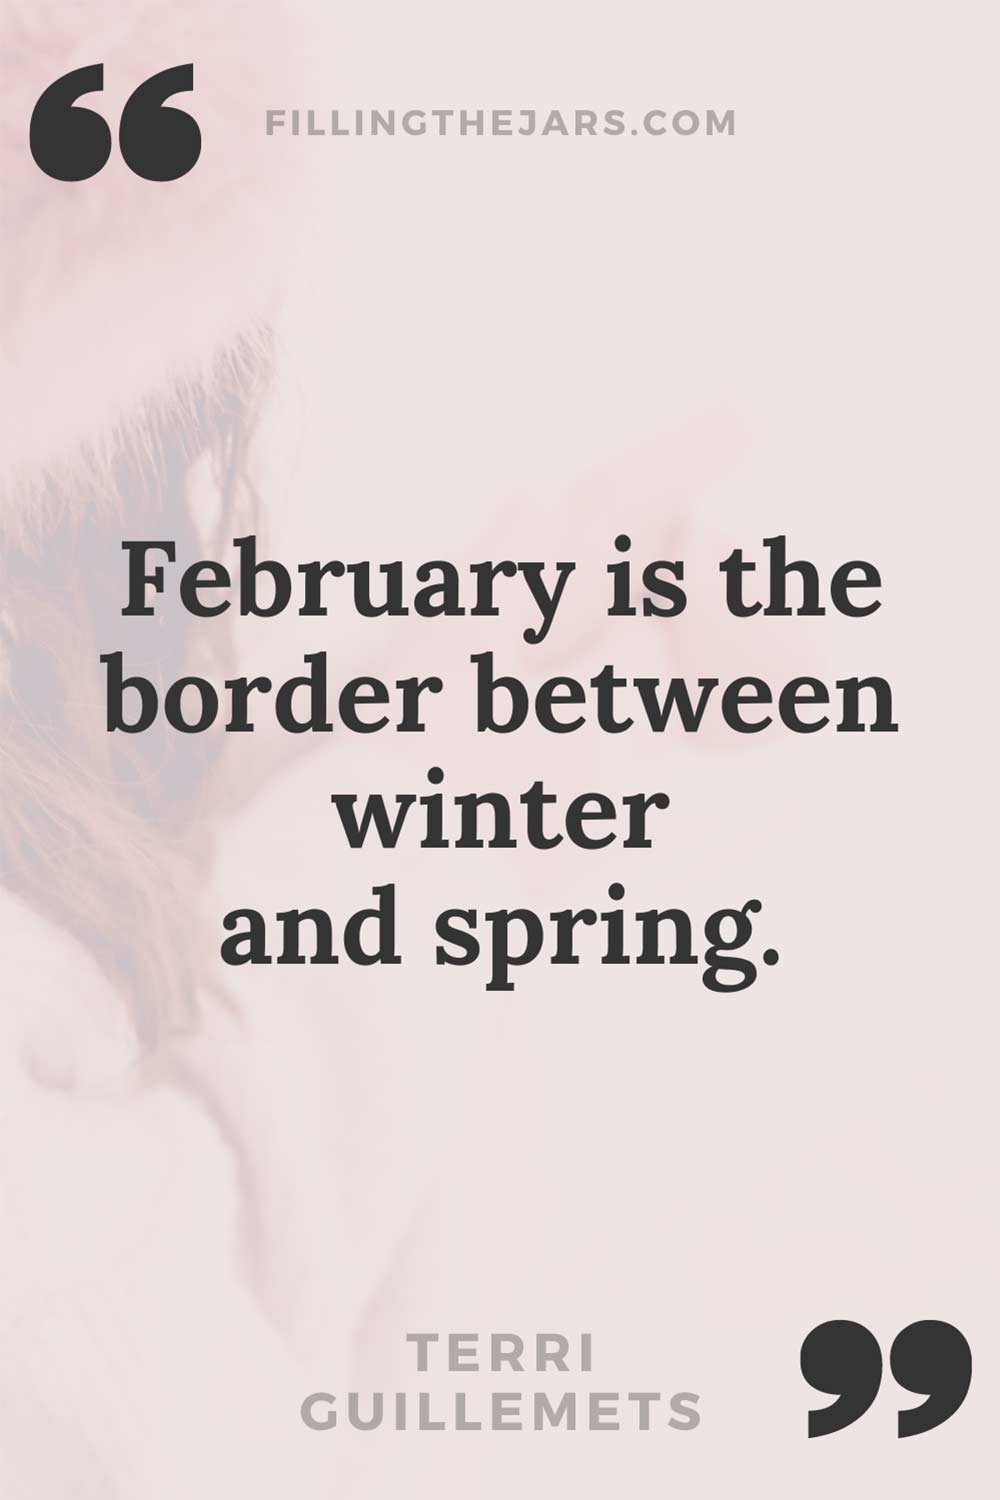 Terri Guillemets February is the border between winter and spring quote text on pink-tinted image of woman outside in winter.